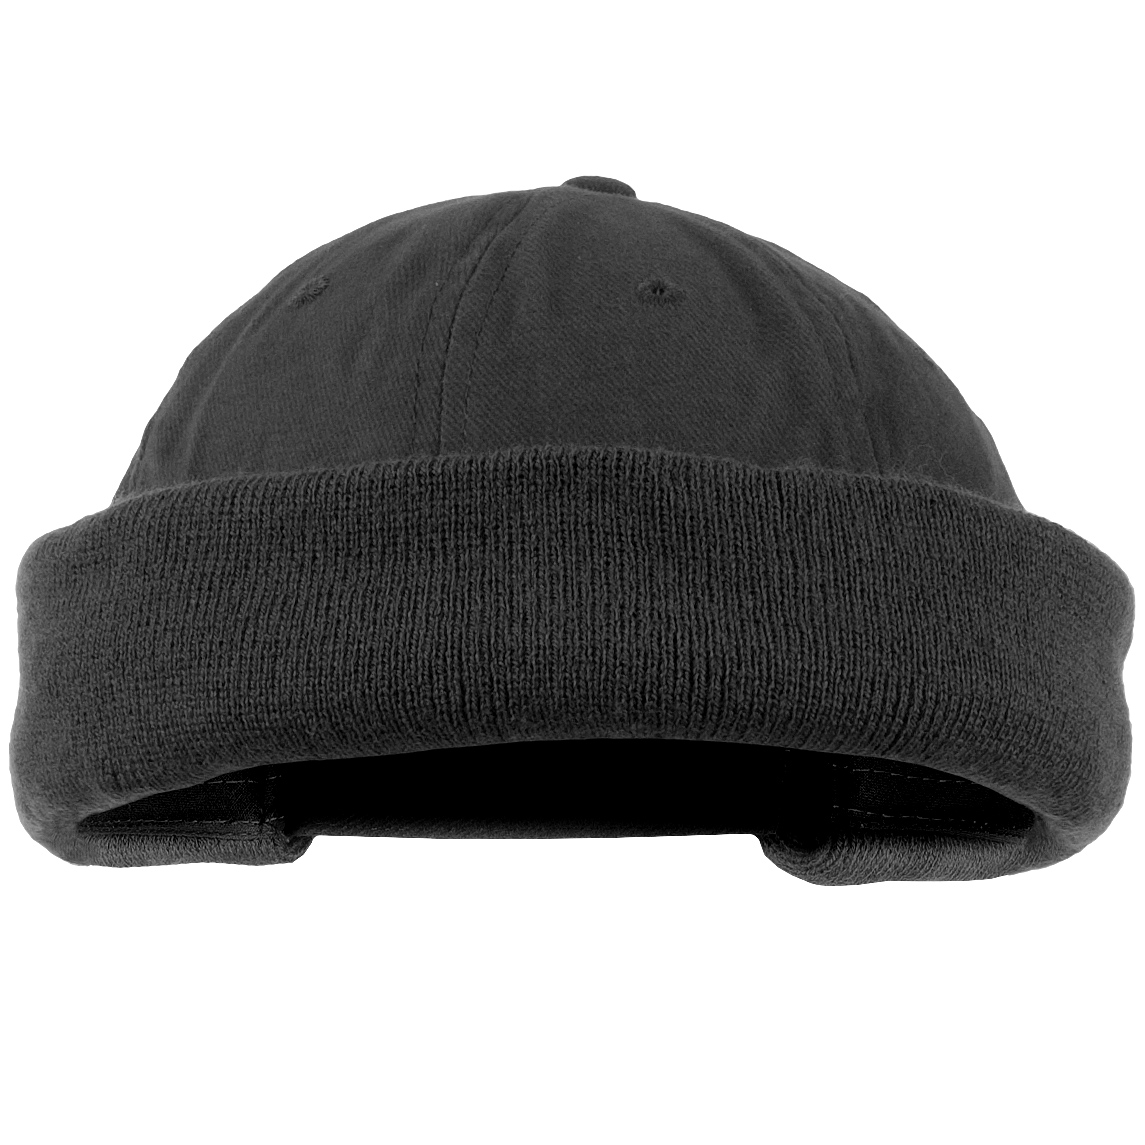 f87c7a413 Details about COMMANDO WATCH CAP ROUND TACTICAL BEANIE ARMY MILITARY EXTRA  SHORT HAT BLACK